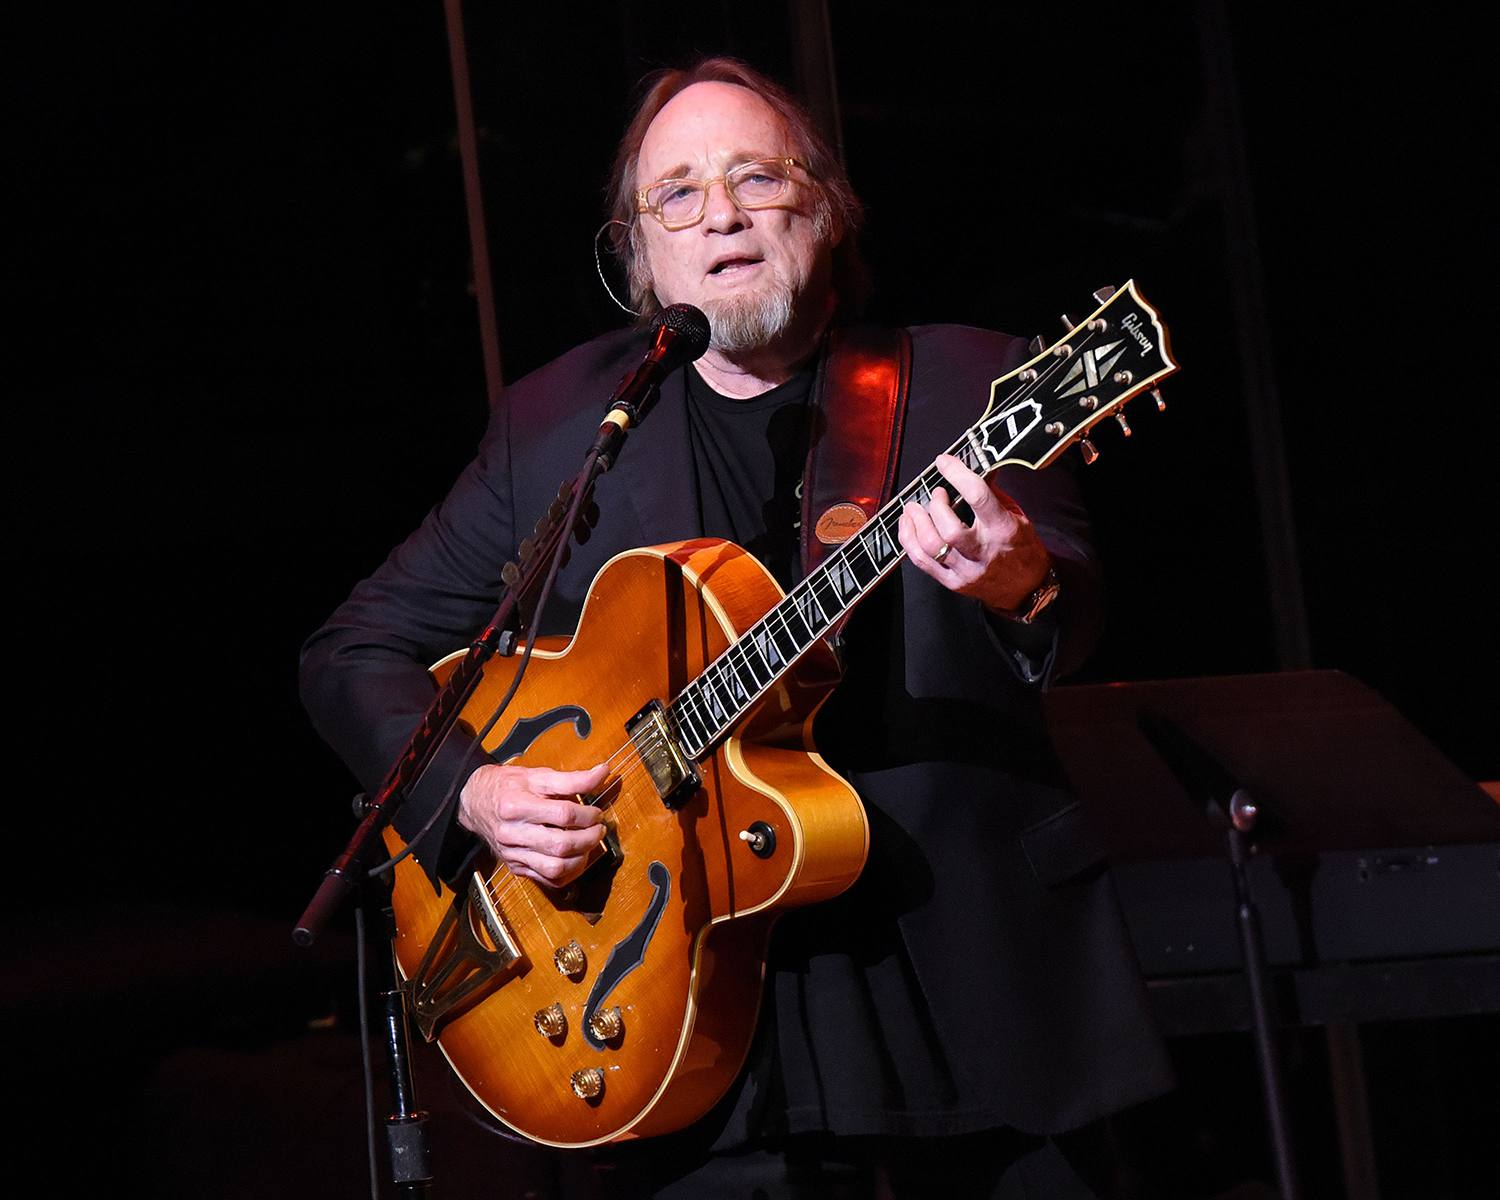 Stephen Stills of Crosby, Stills, Nash, And Young performs